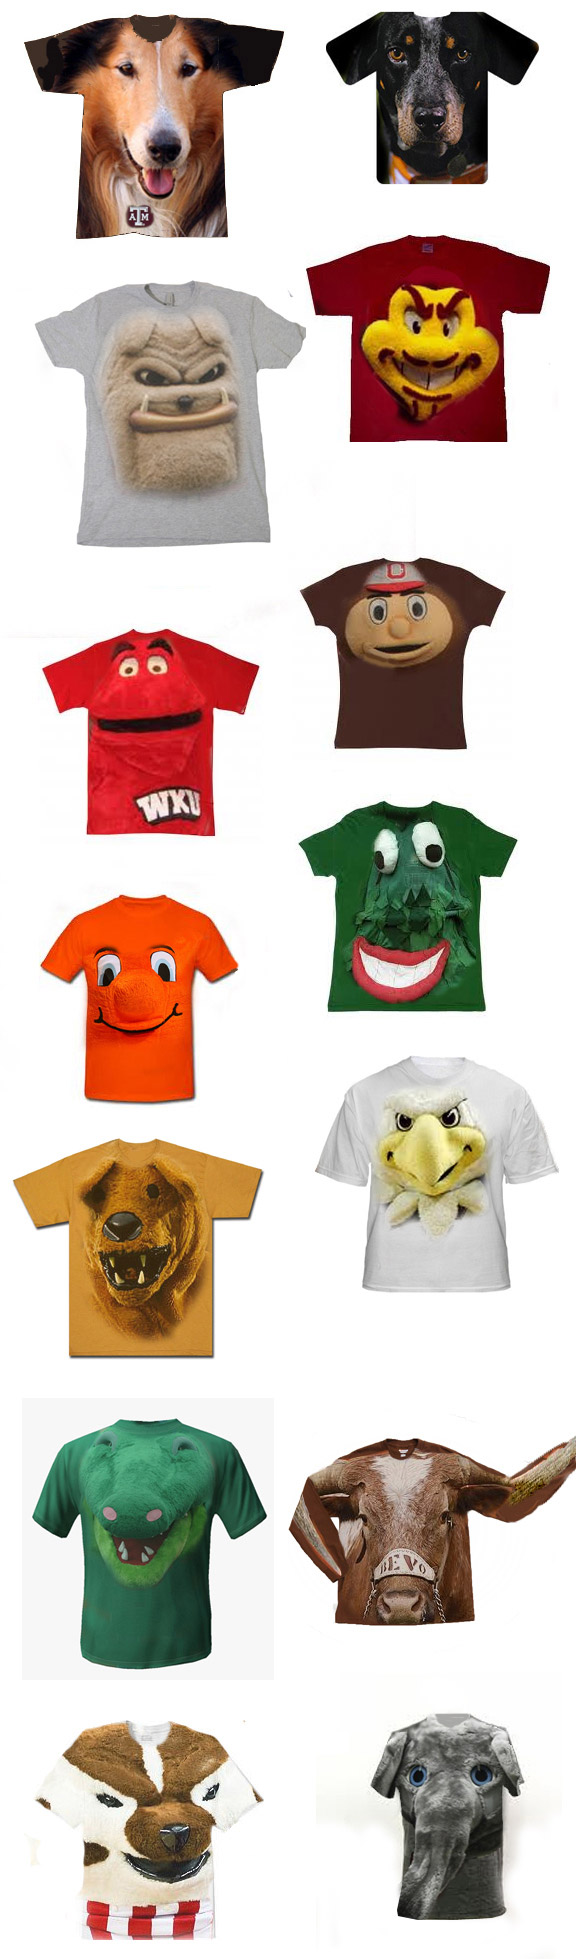 Dog Face T-shirts With College Mascots